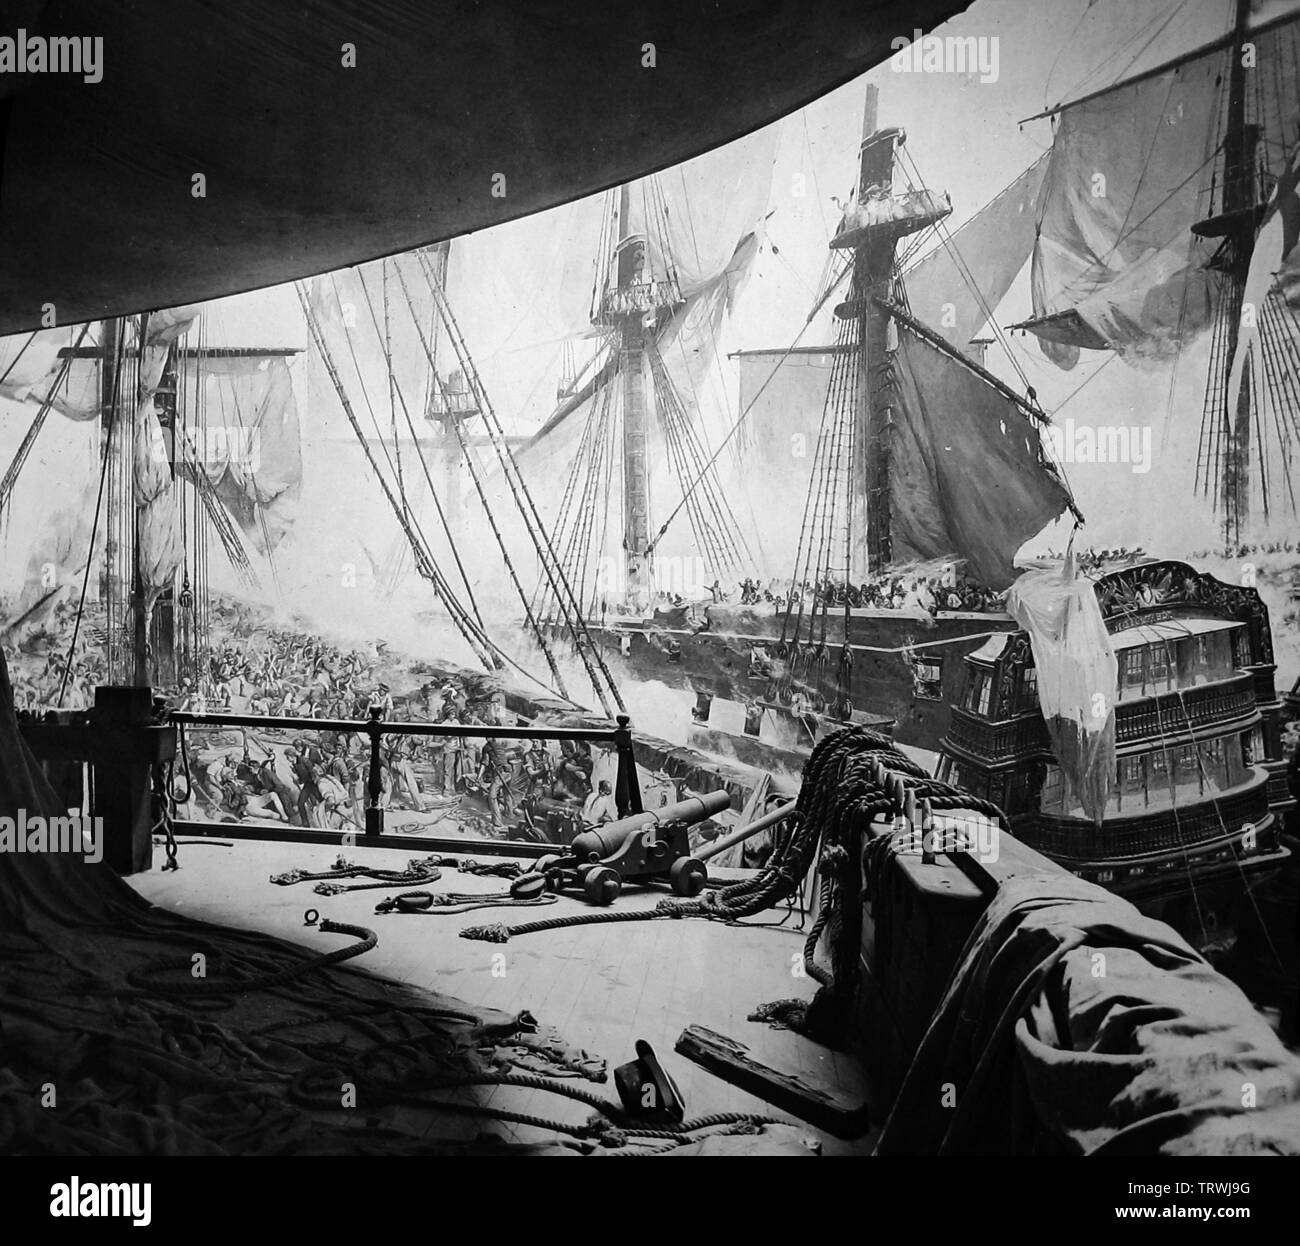 Battle of Trafalgar panorama, Royal Naval Exhibition of 1891 in London Stock Photo